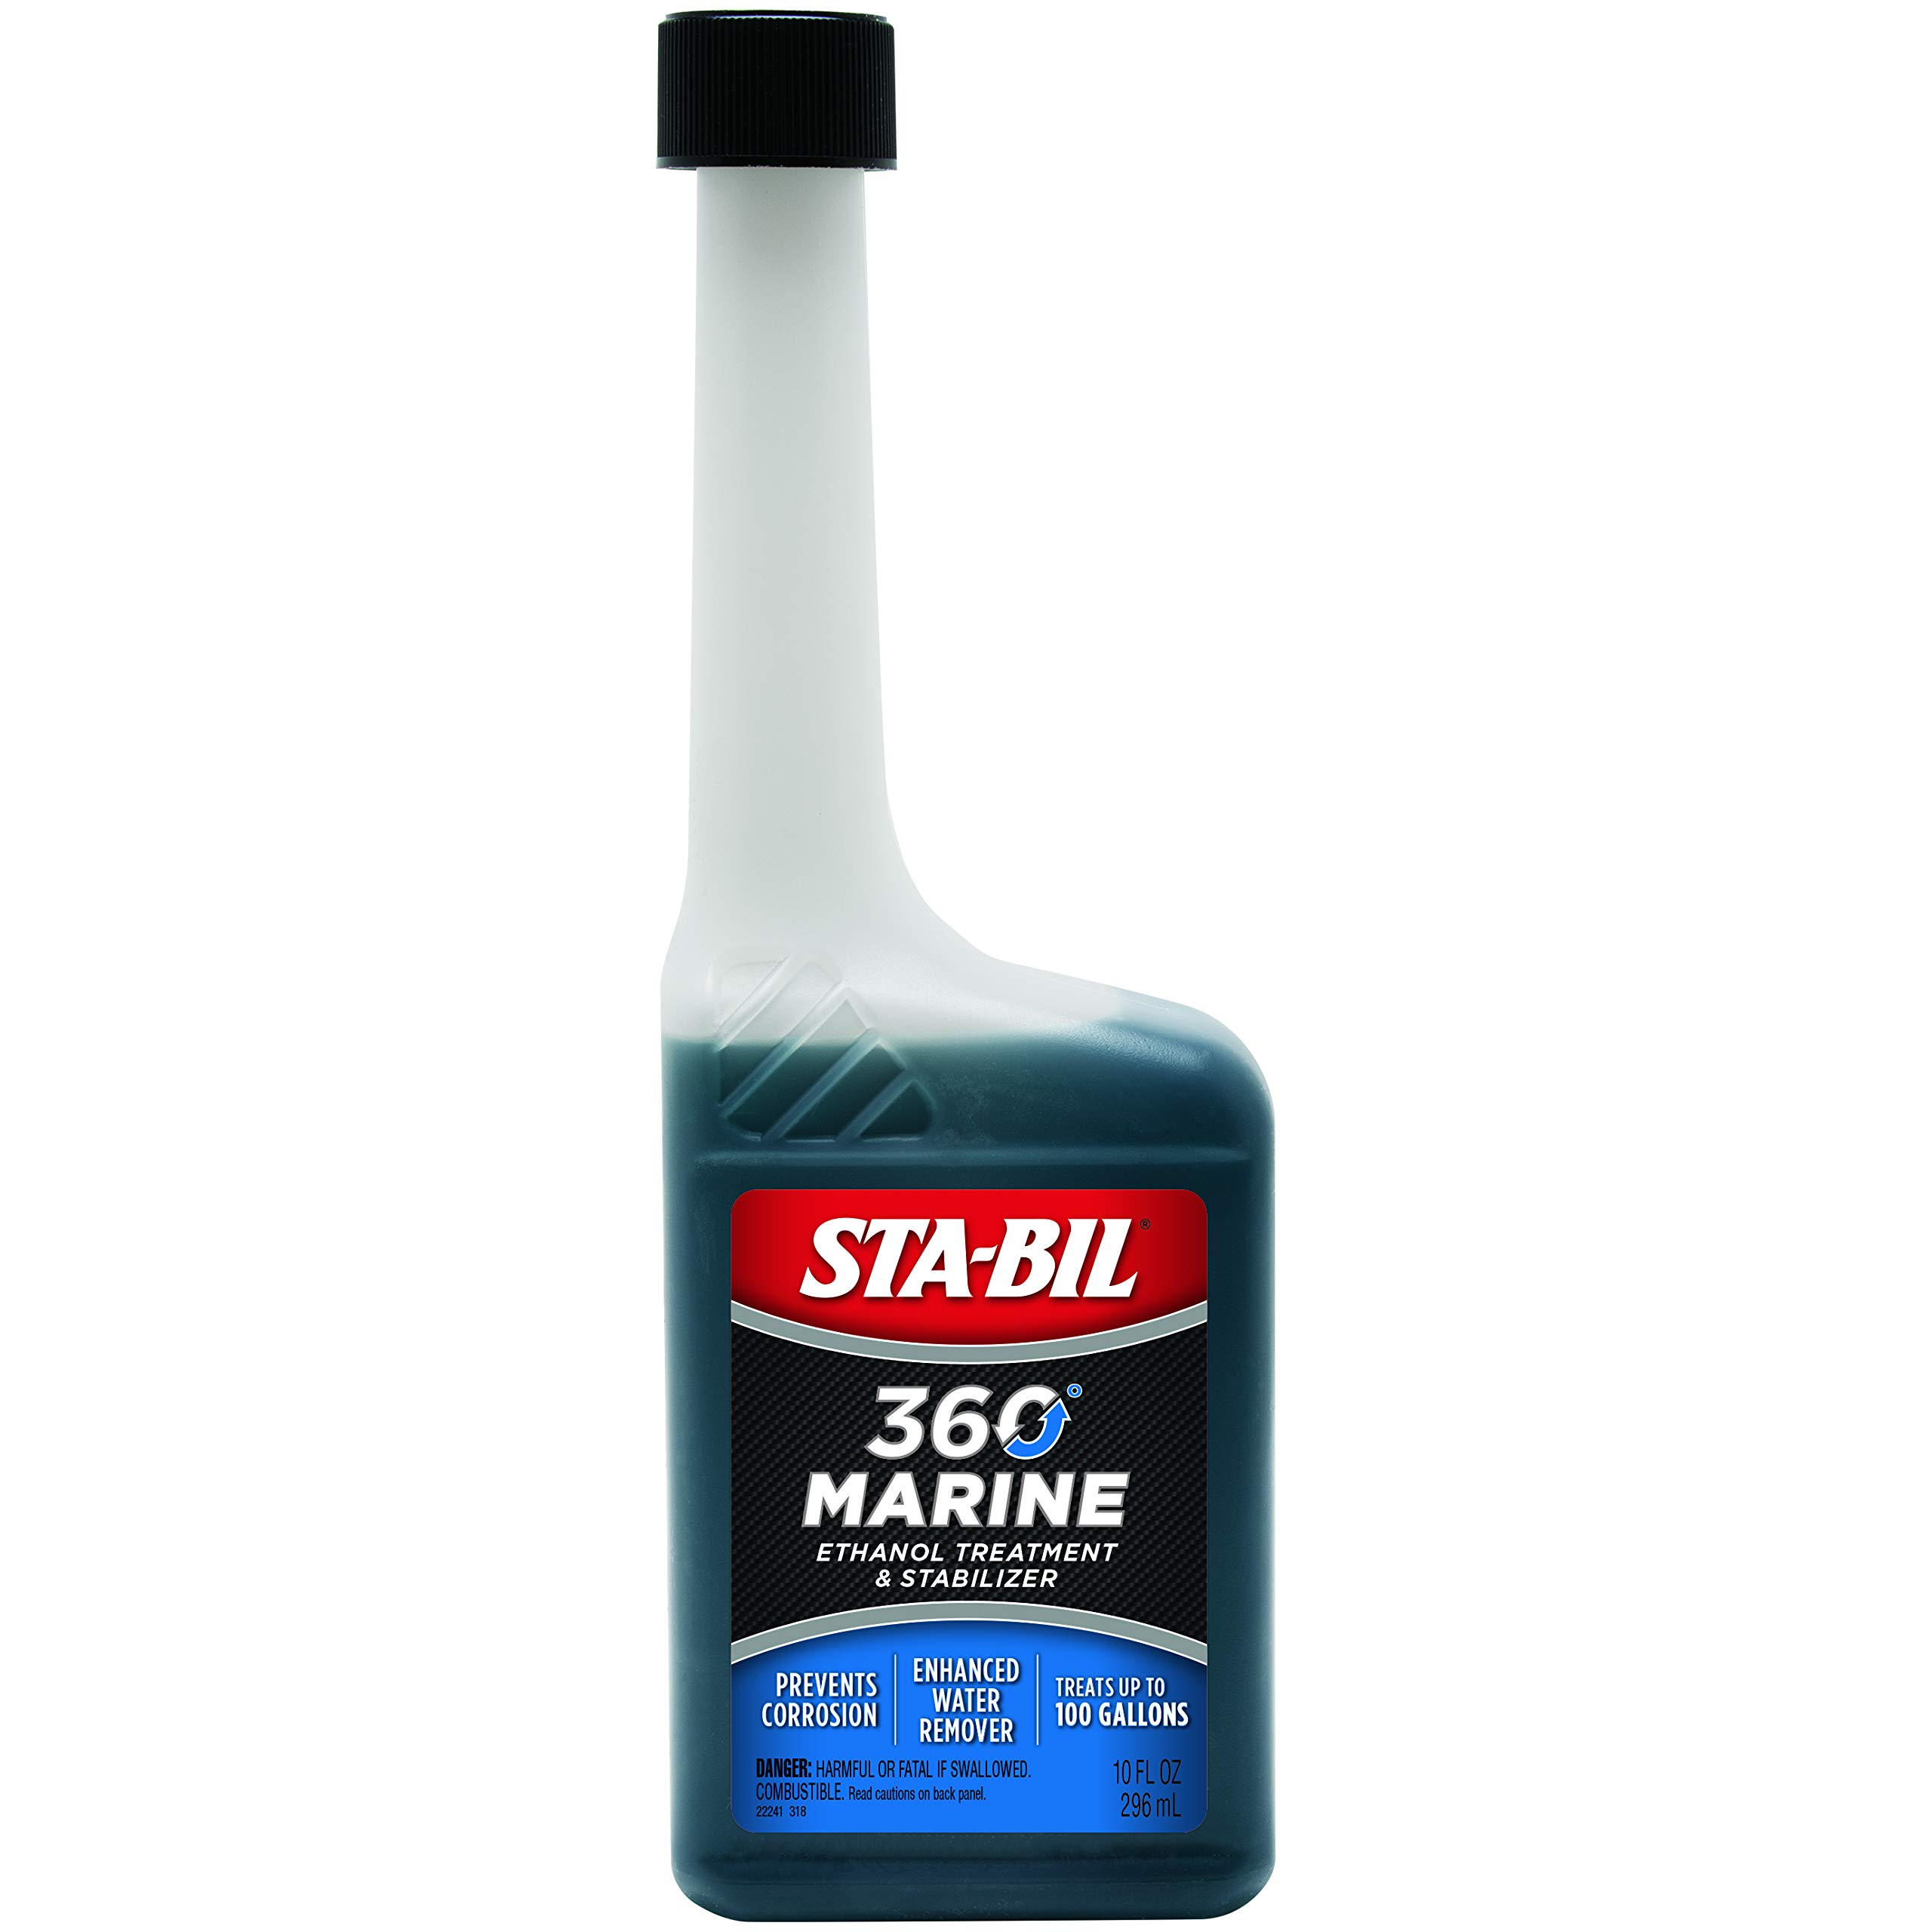 STA-BIL 360 22241-12PK Marine with Vapor Technology, 10 oz. (Pack of 12) by STA-BIL (Image #1)